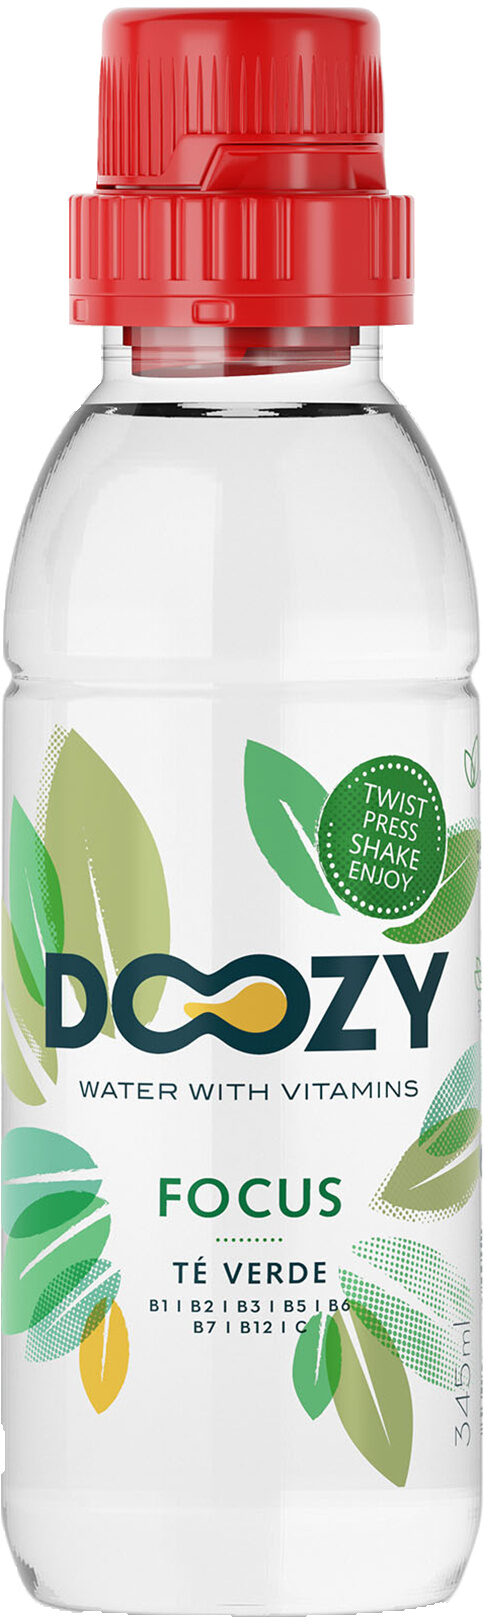 Doozy water with vitamins Focus - Producto